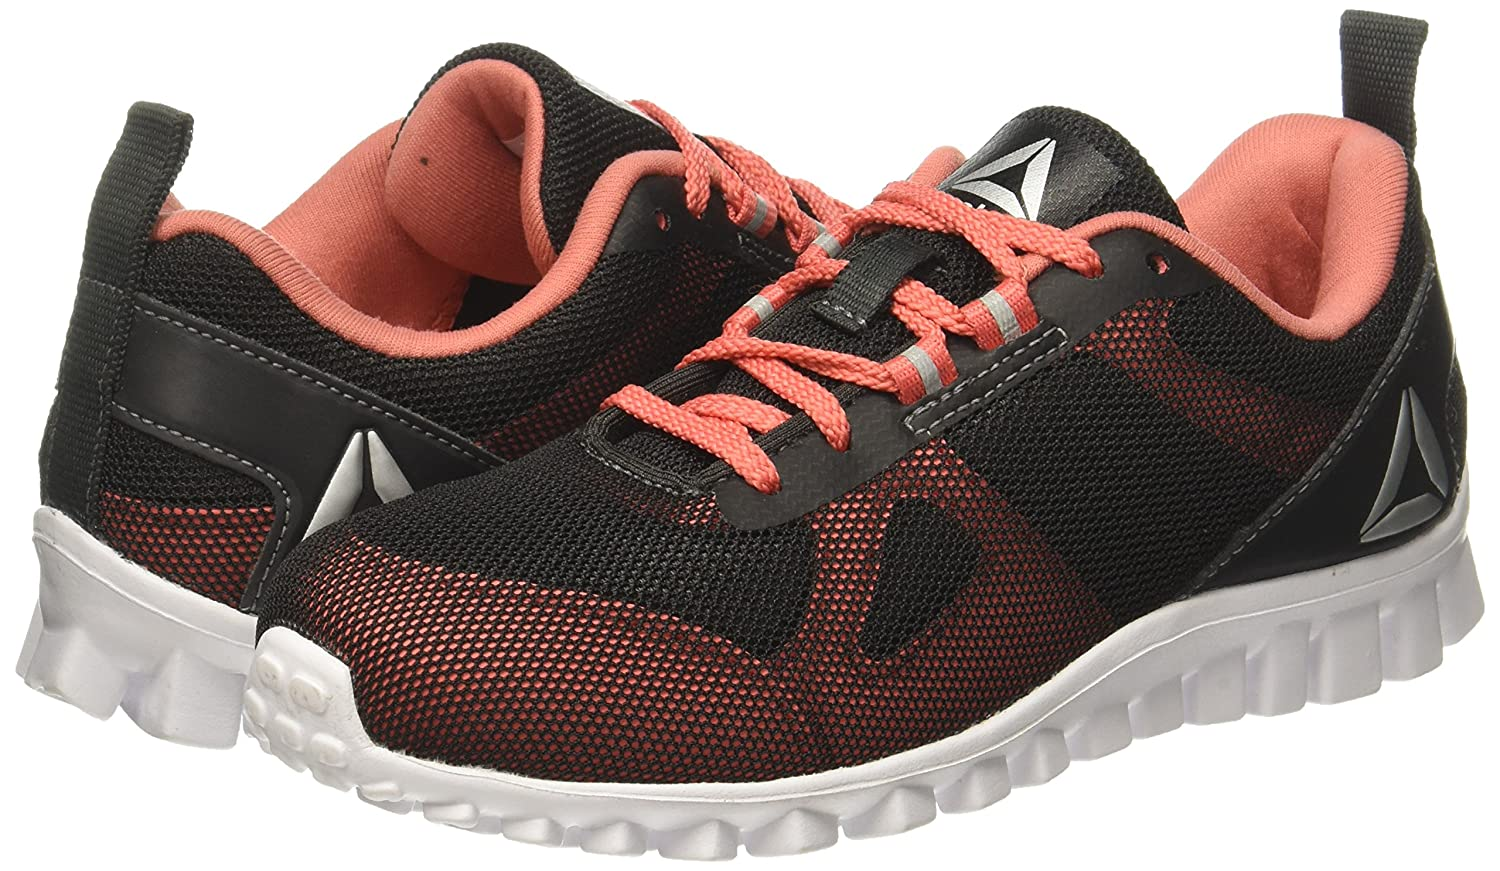 39e20faab Reebok Girl s Sports Shoes  Buy Online at Low Prices in India - Amazon.in